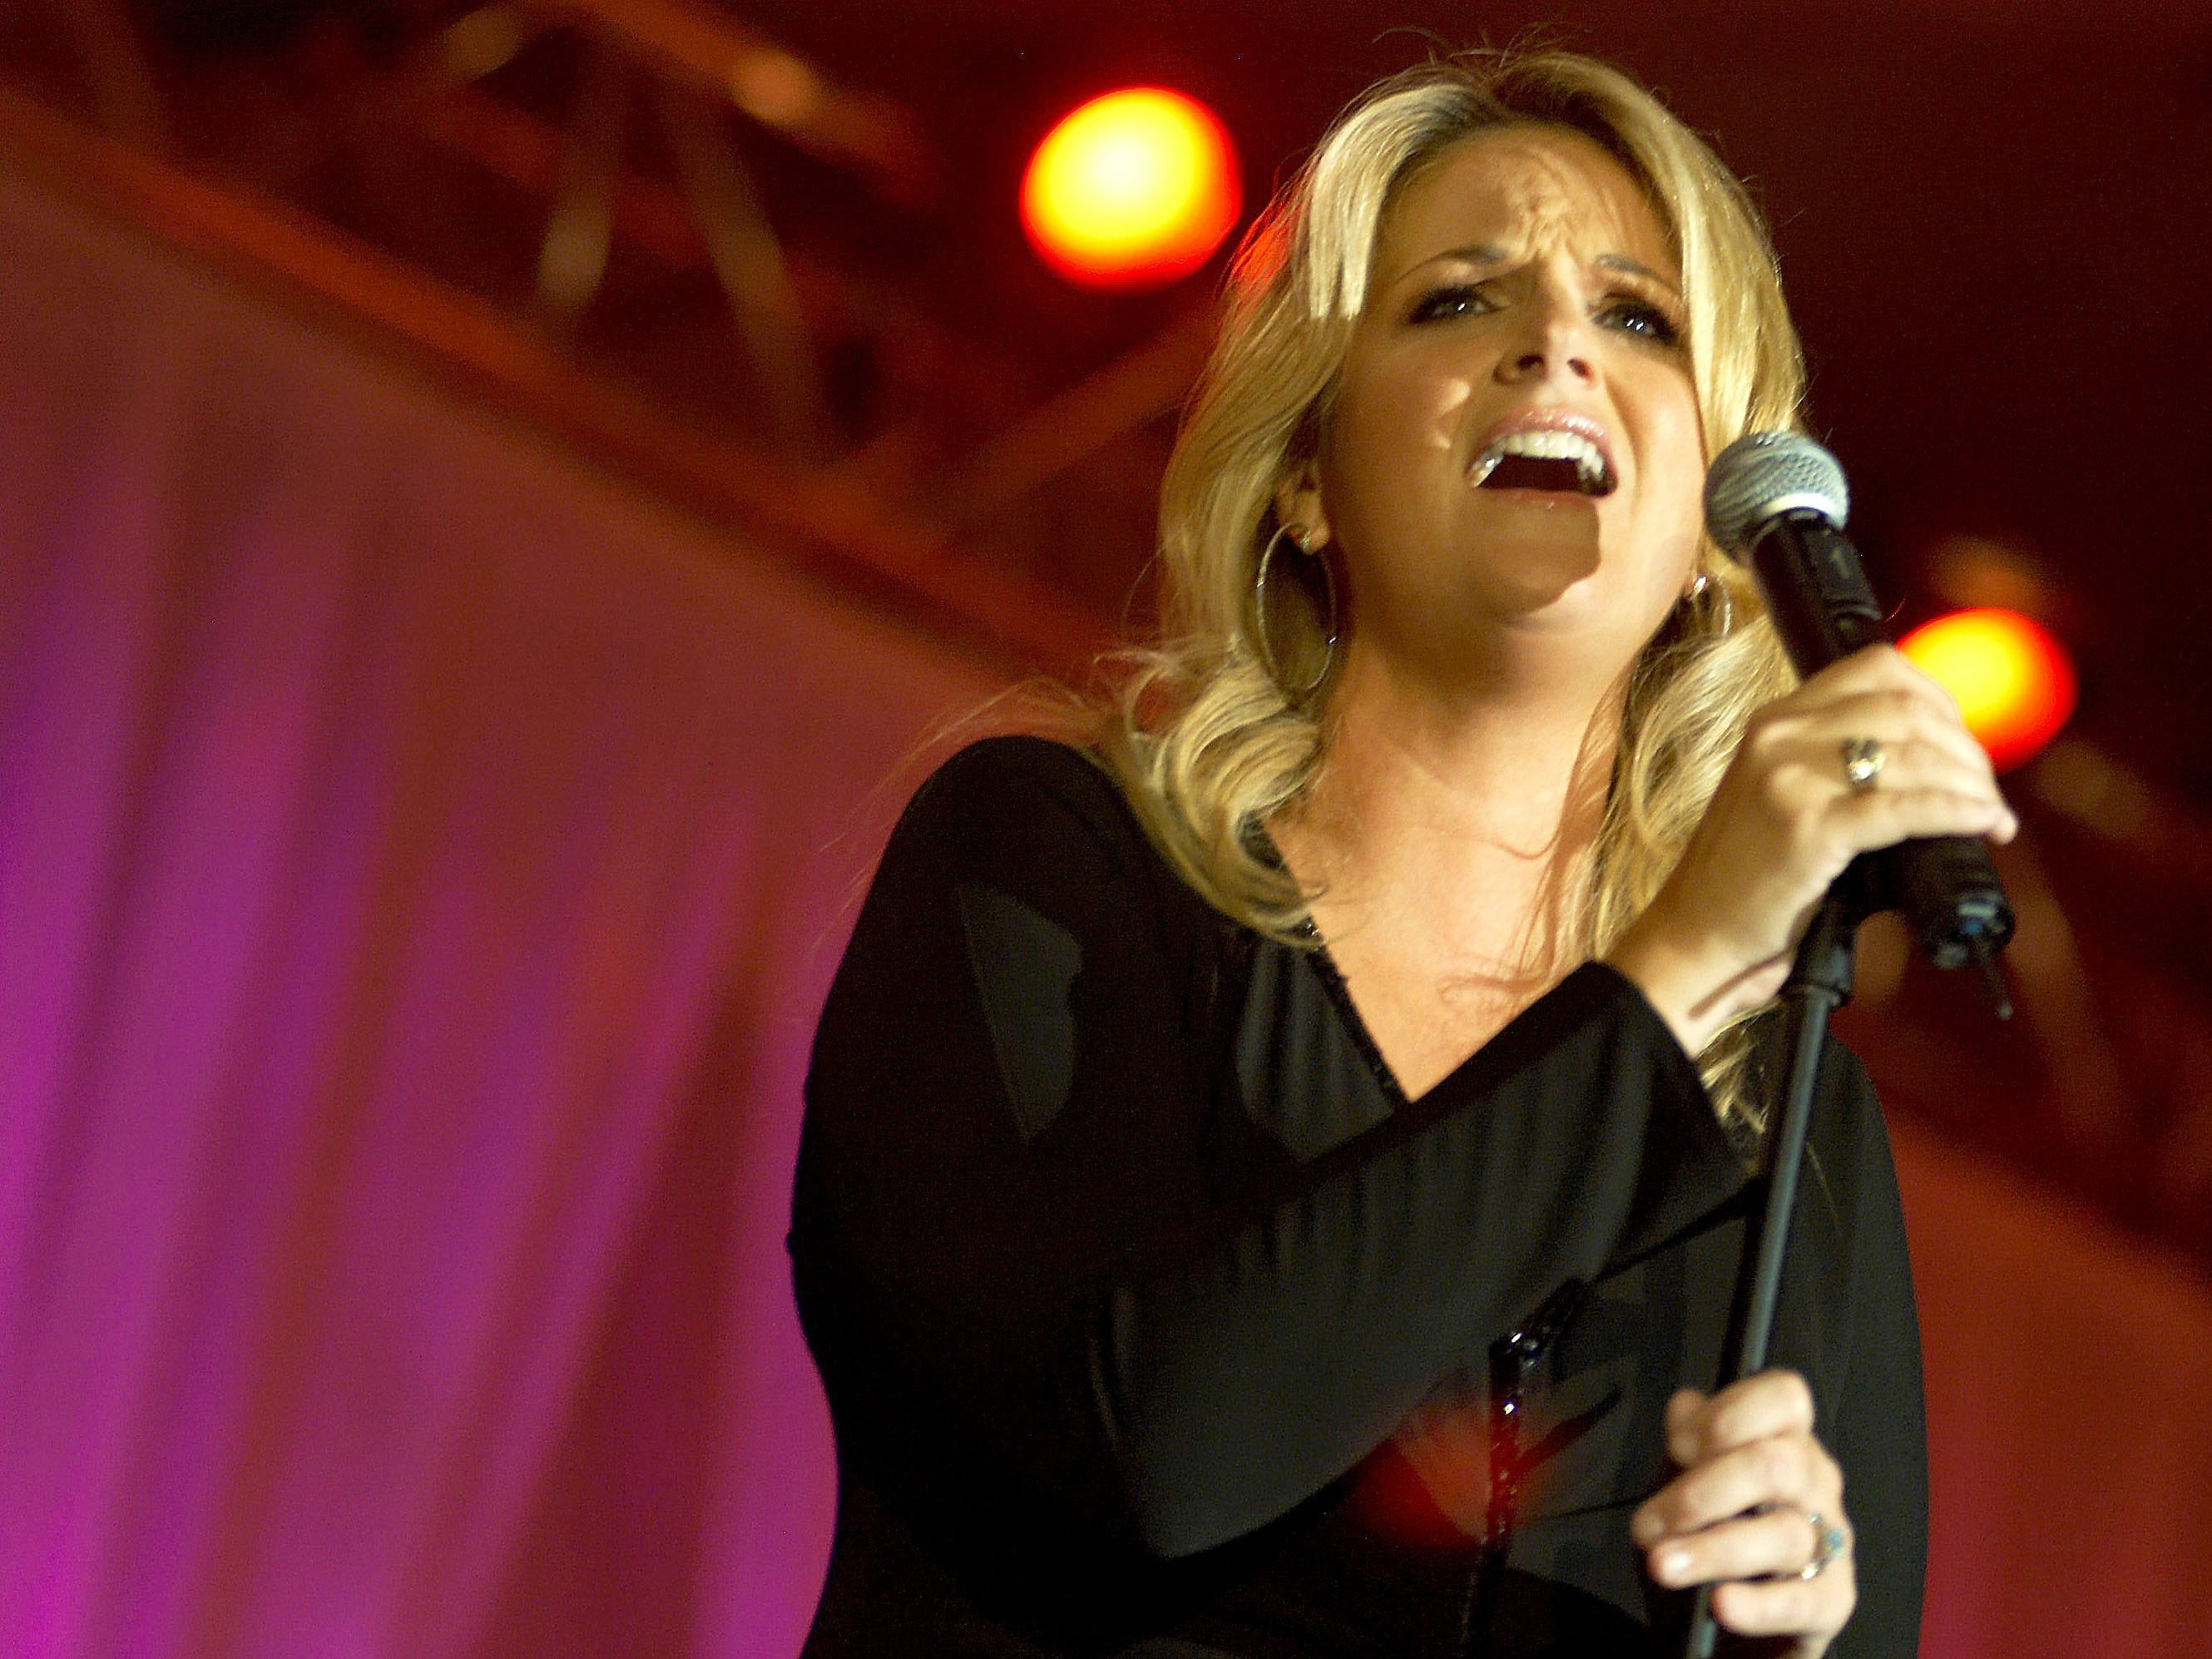 Trisha Yearwood performs at the 5th annual Starkey Foundation Gala on August 20, 2005 in St. Paul, Minnesota.